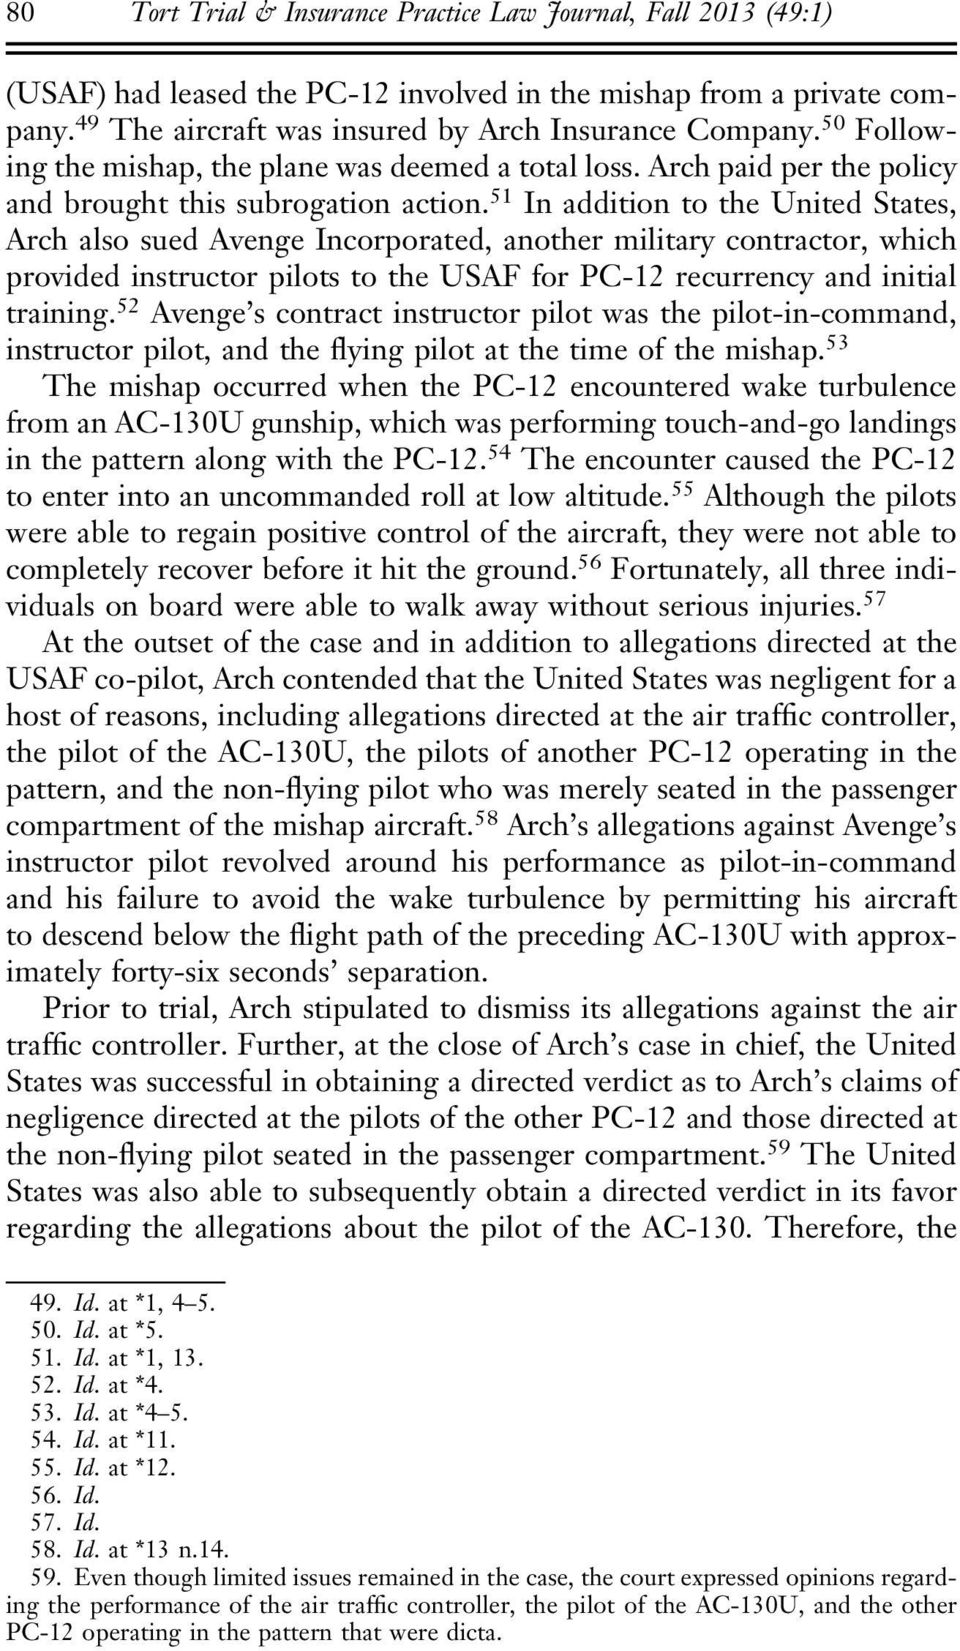 51 In addition to the United States, Arch also sued Avenge Incorporated, another military contractor, which provided instructor pilots to the USAF for PC-12 recurrency and initial training.